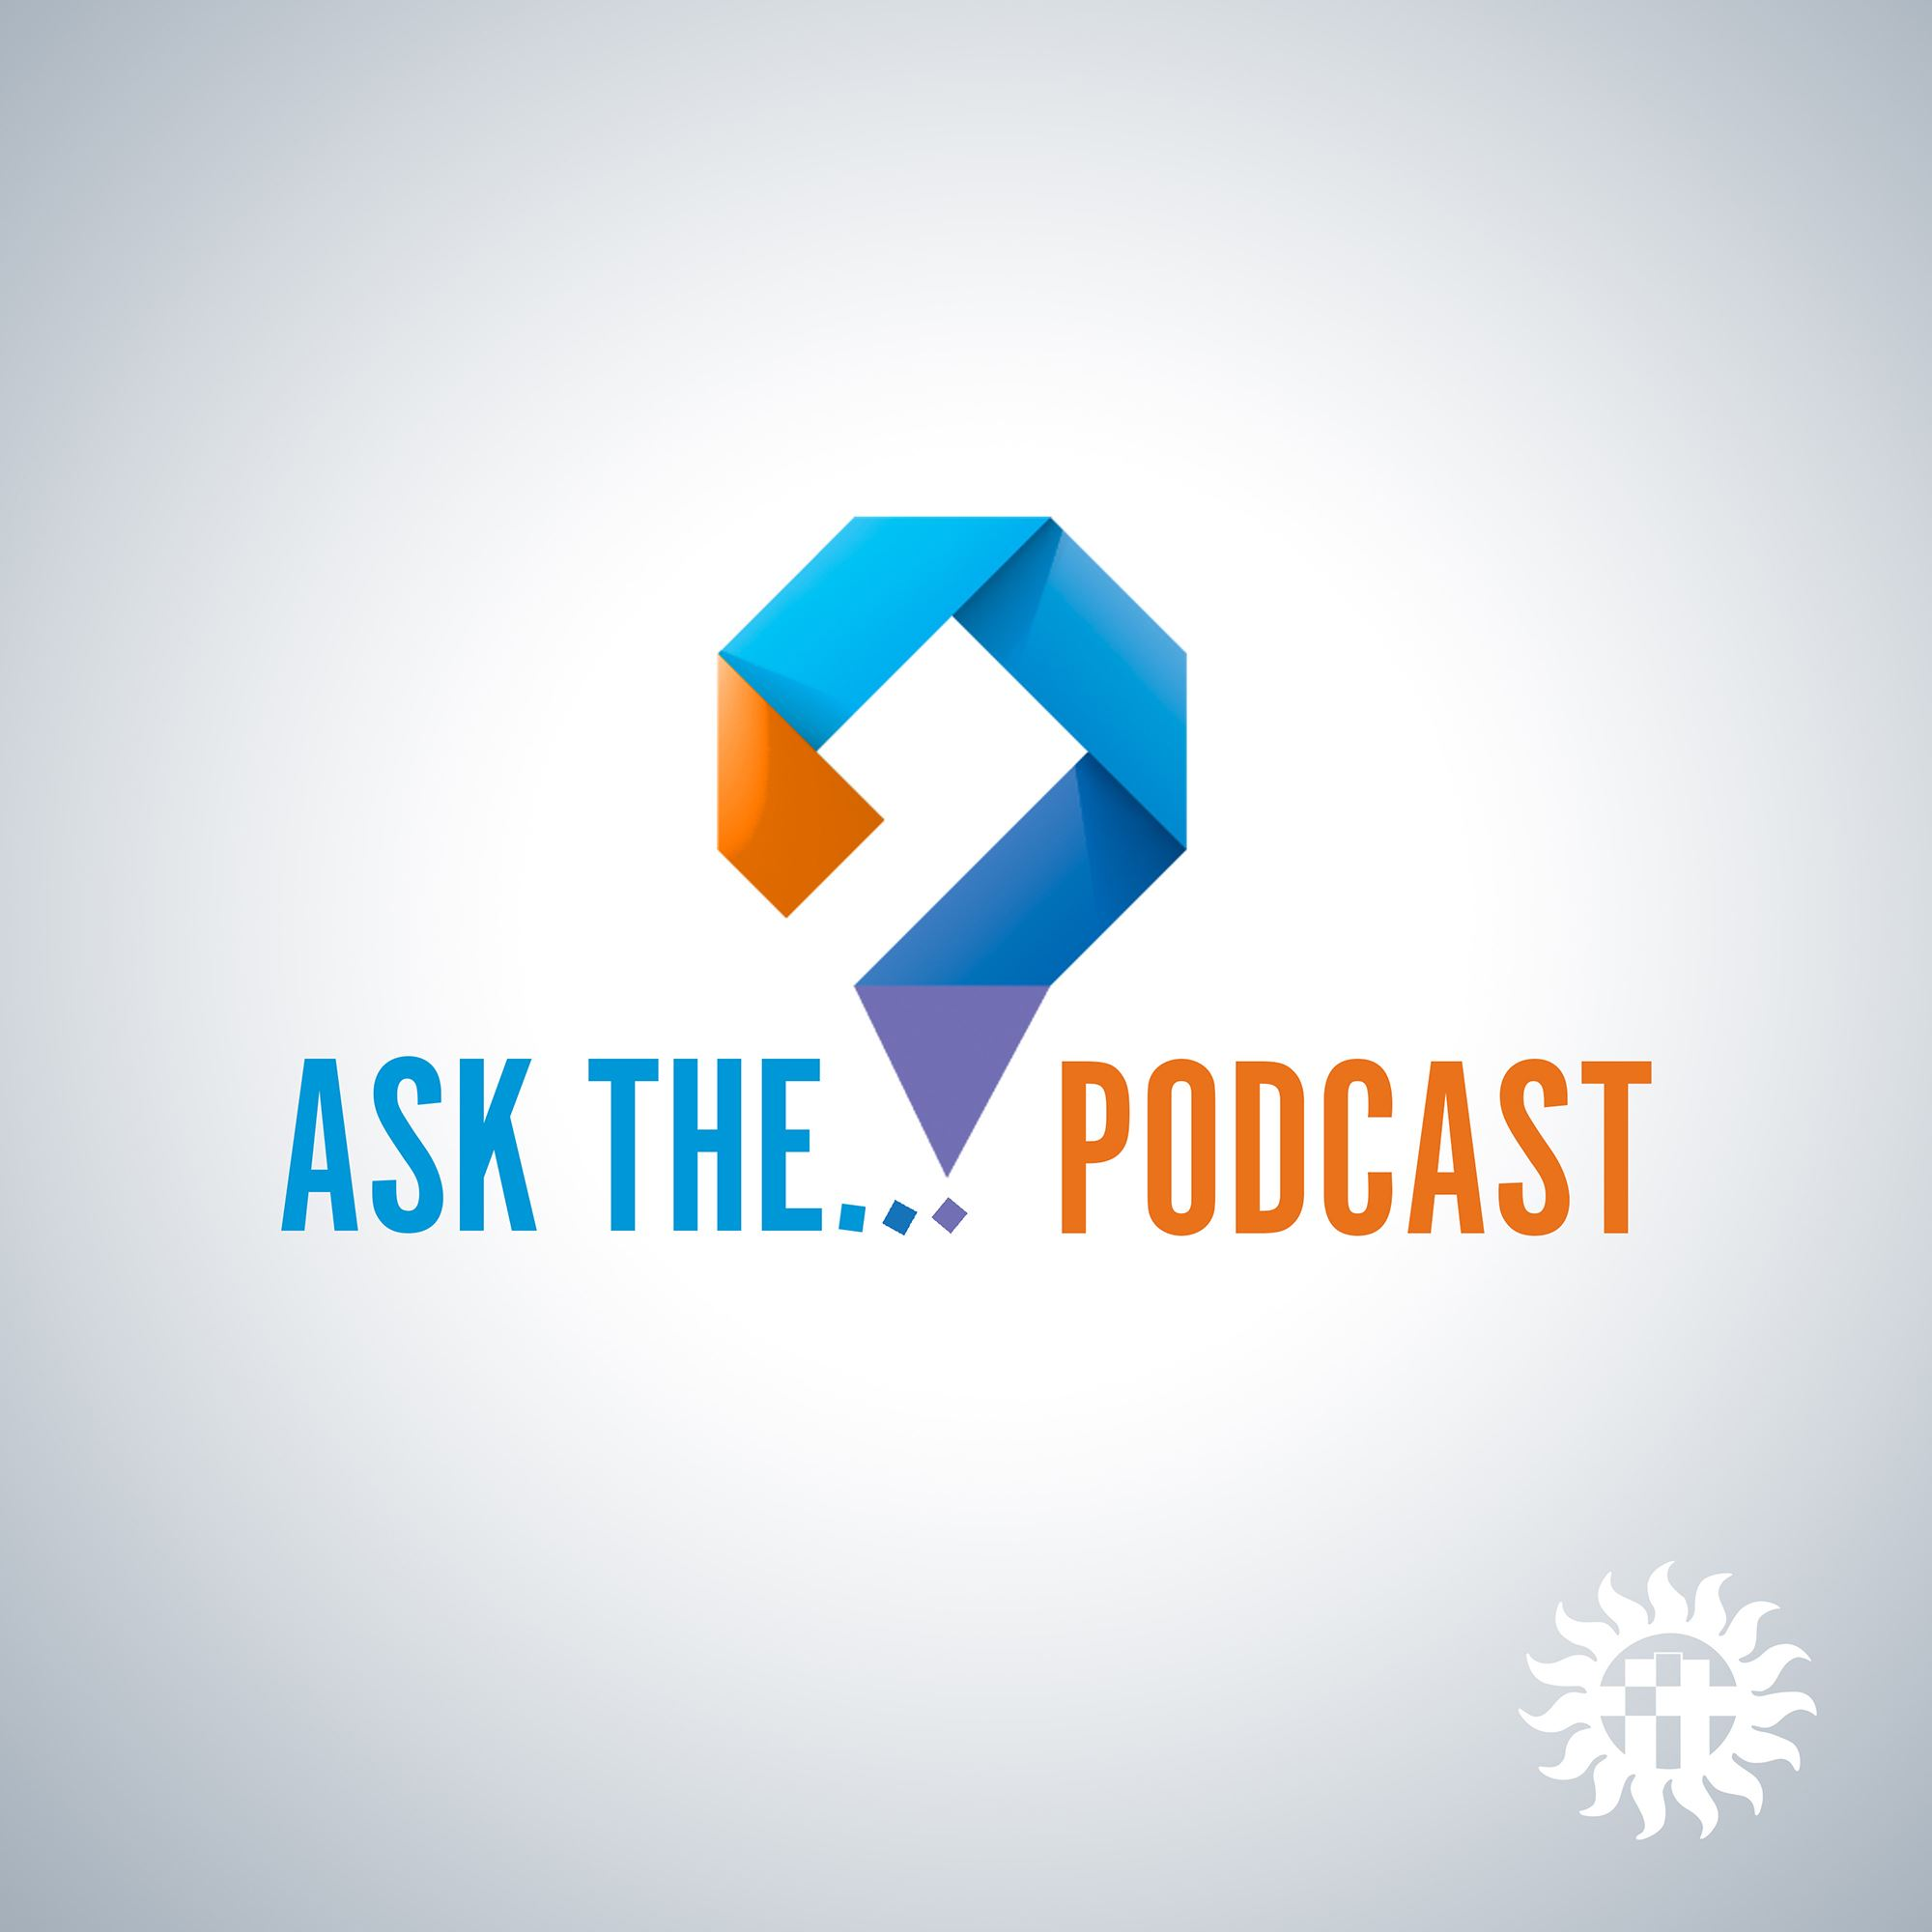 Ask The Podcast Logo